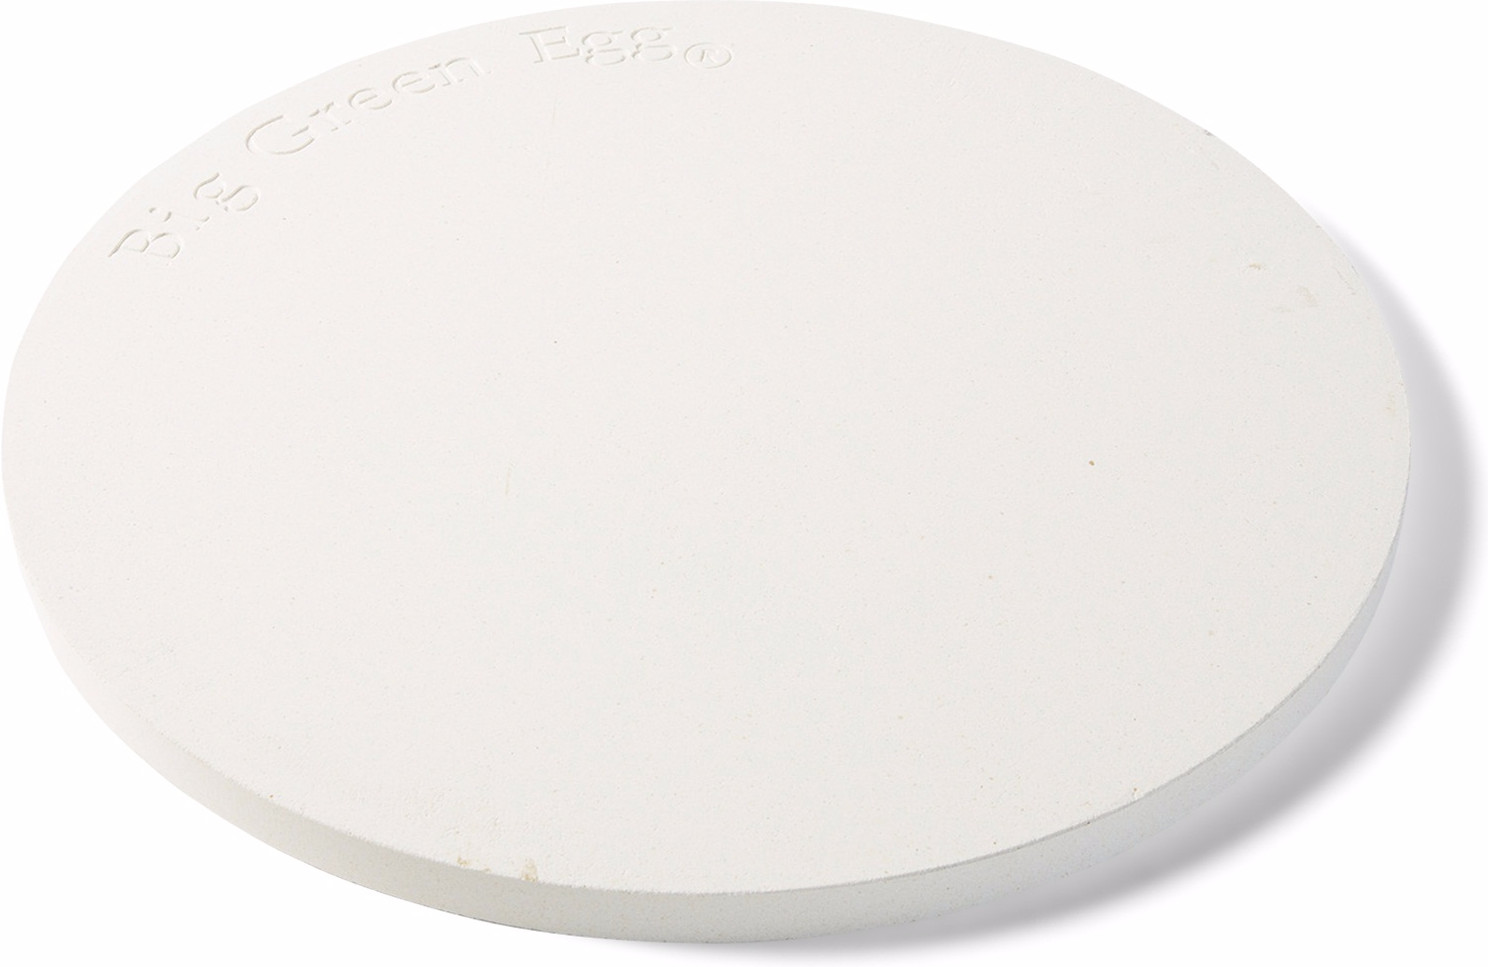 Big Green Egg Flat Baking Stone Large